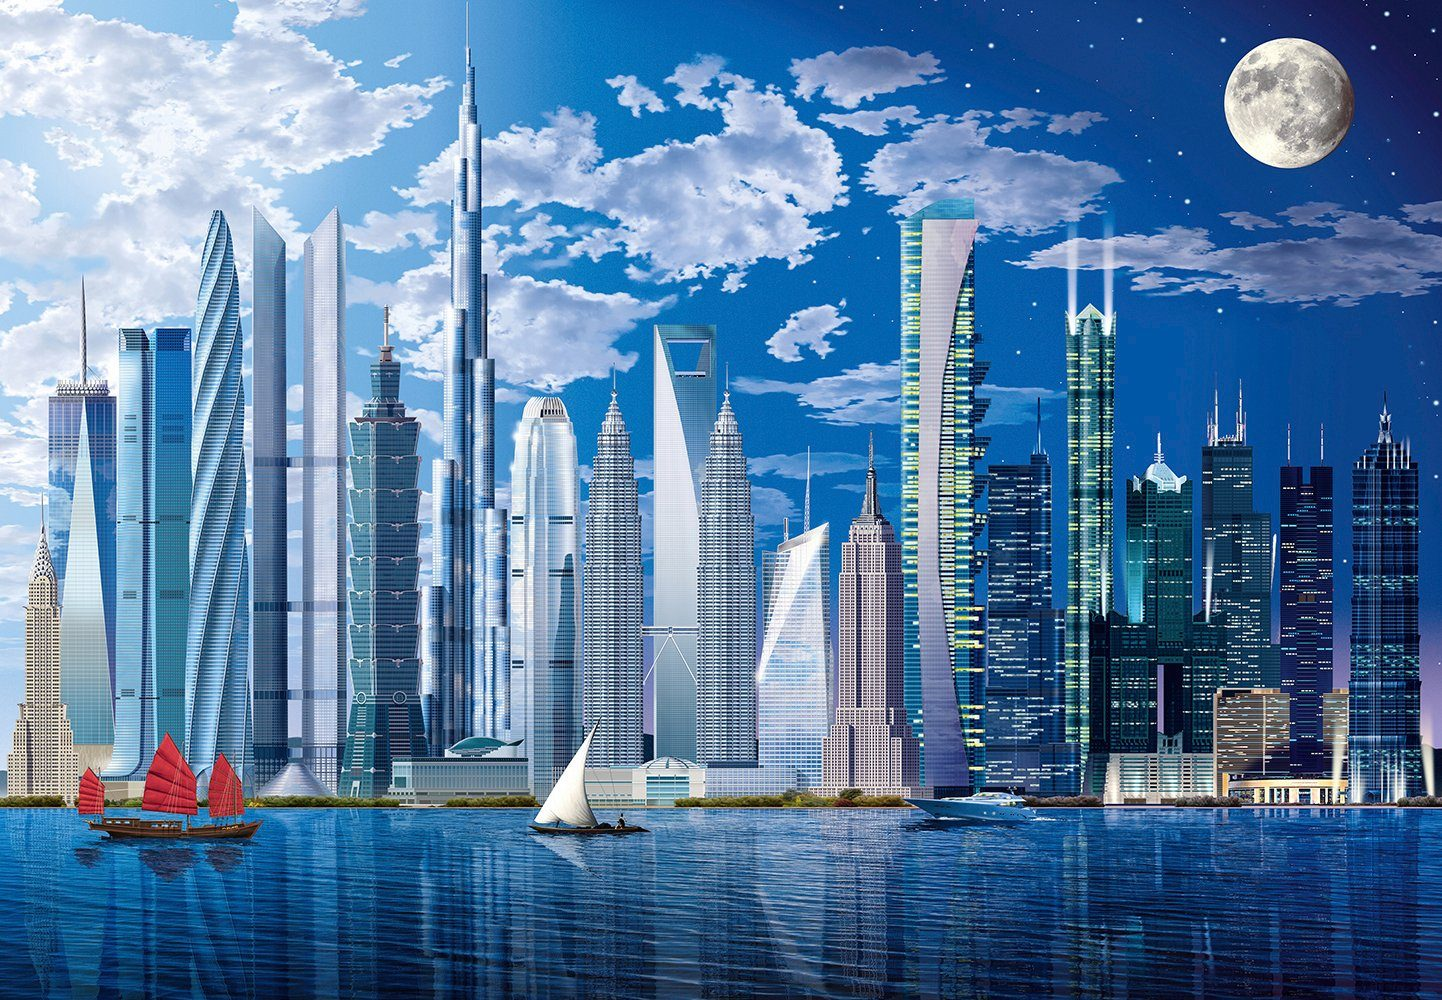 Fototapete »World´s Tallest Buildings«, 8-teilig, 366x254 cm